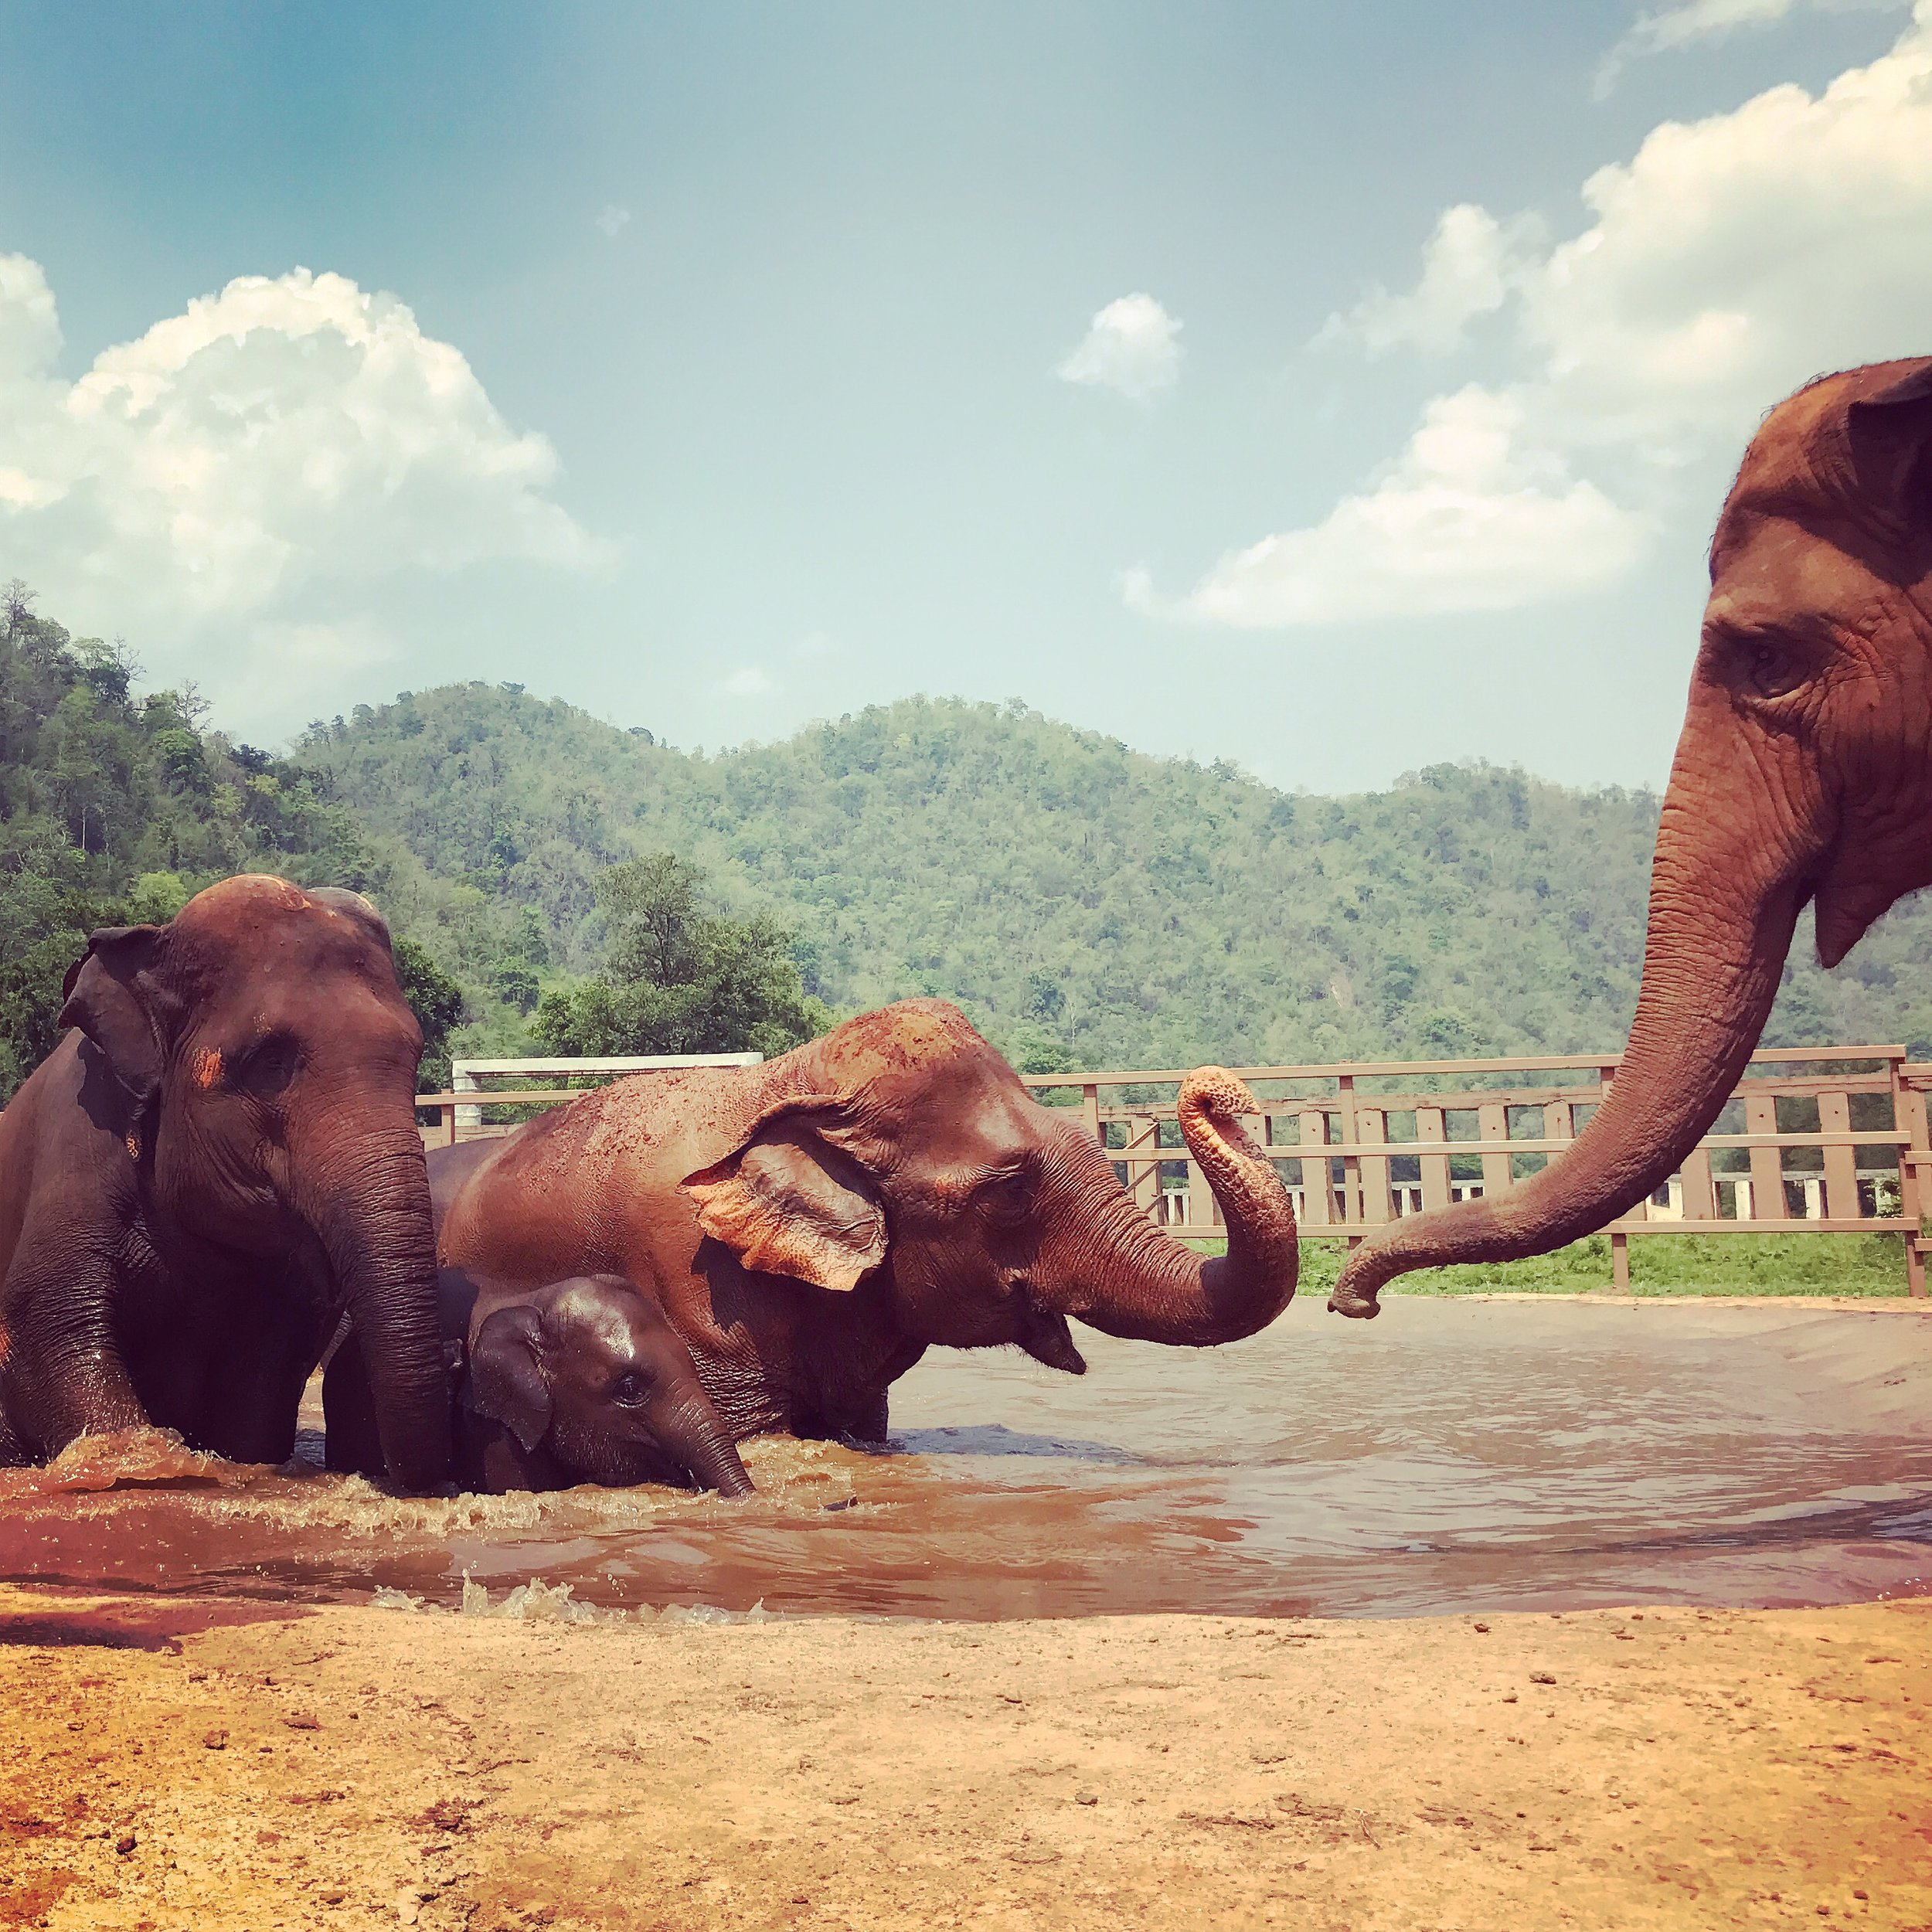 A happy herd at Elephant Nature Park in Chiang Mai, Thailand.